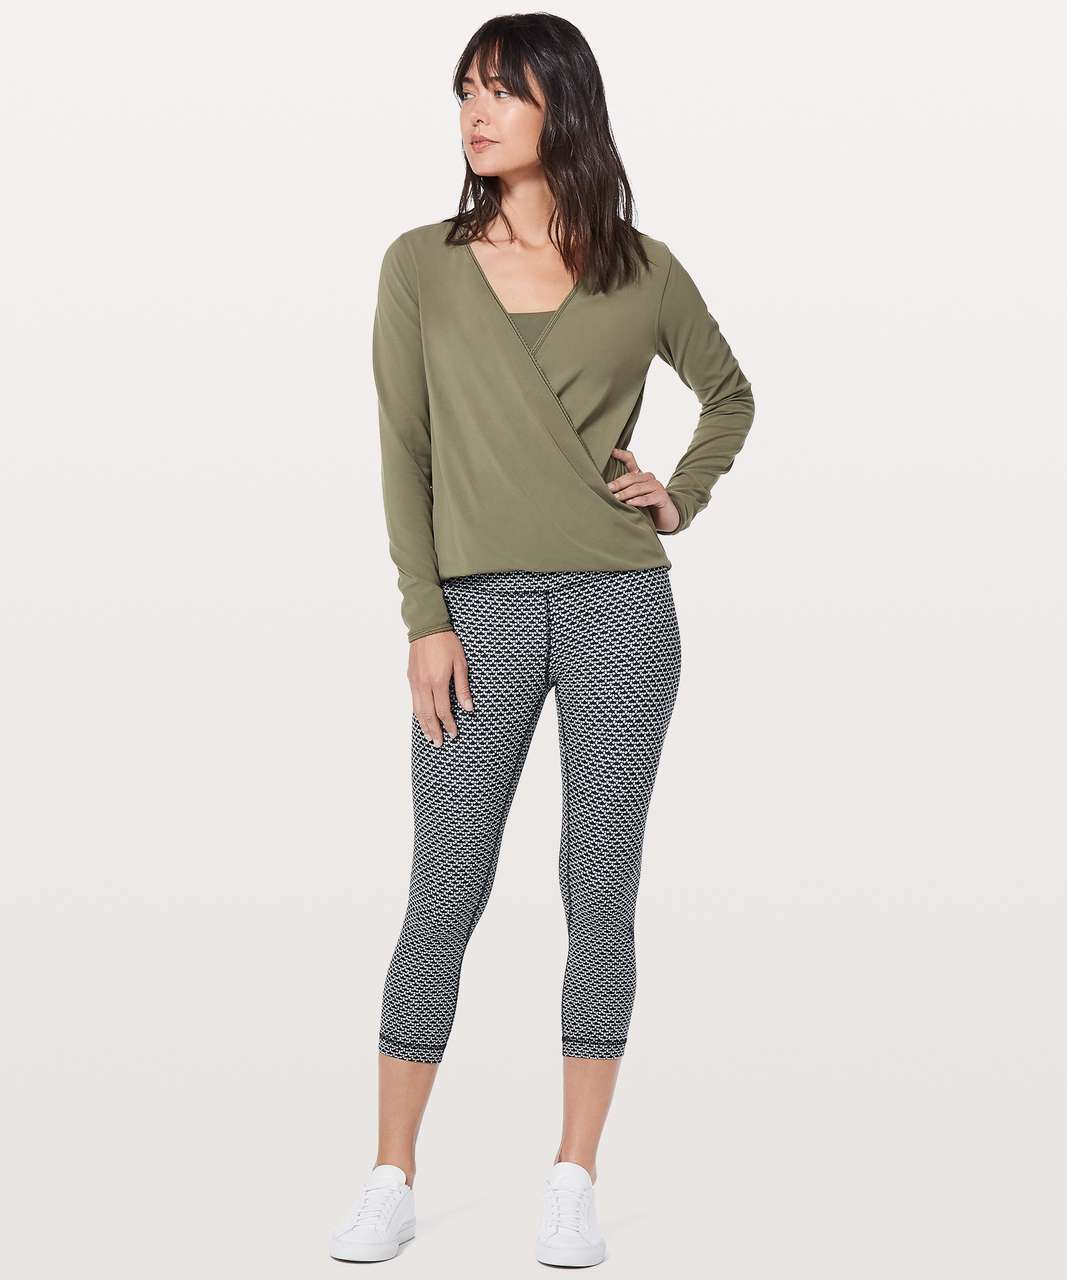 Lululemon Full Freedom Long Sleeve - Sage